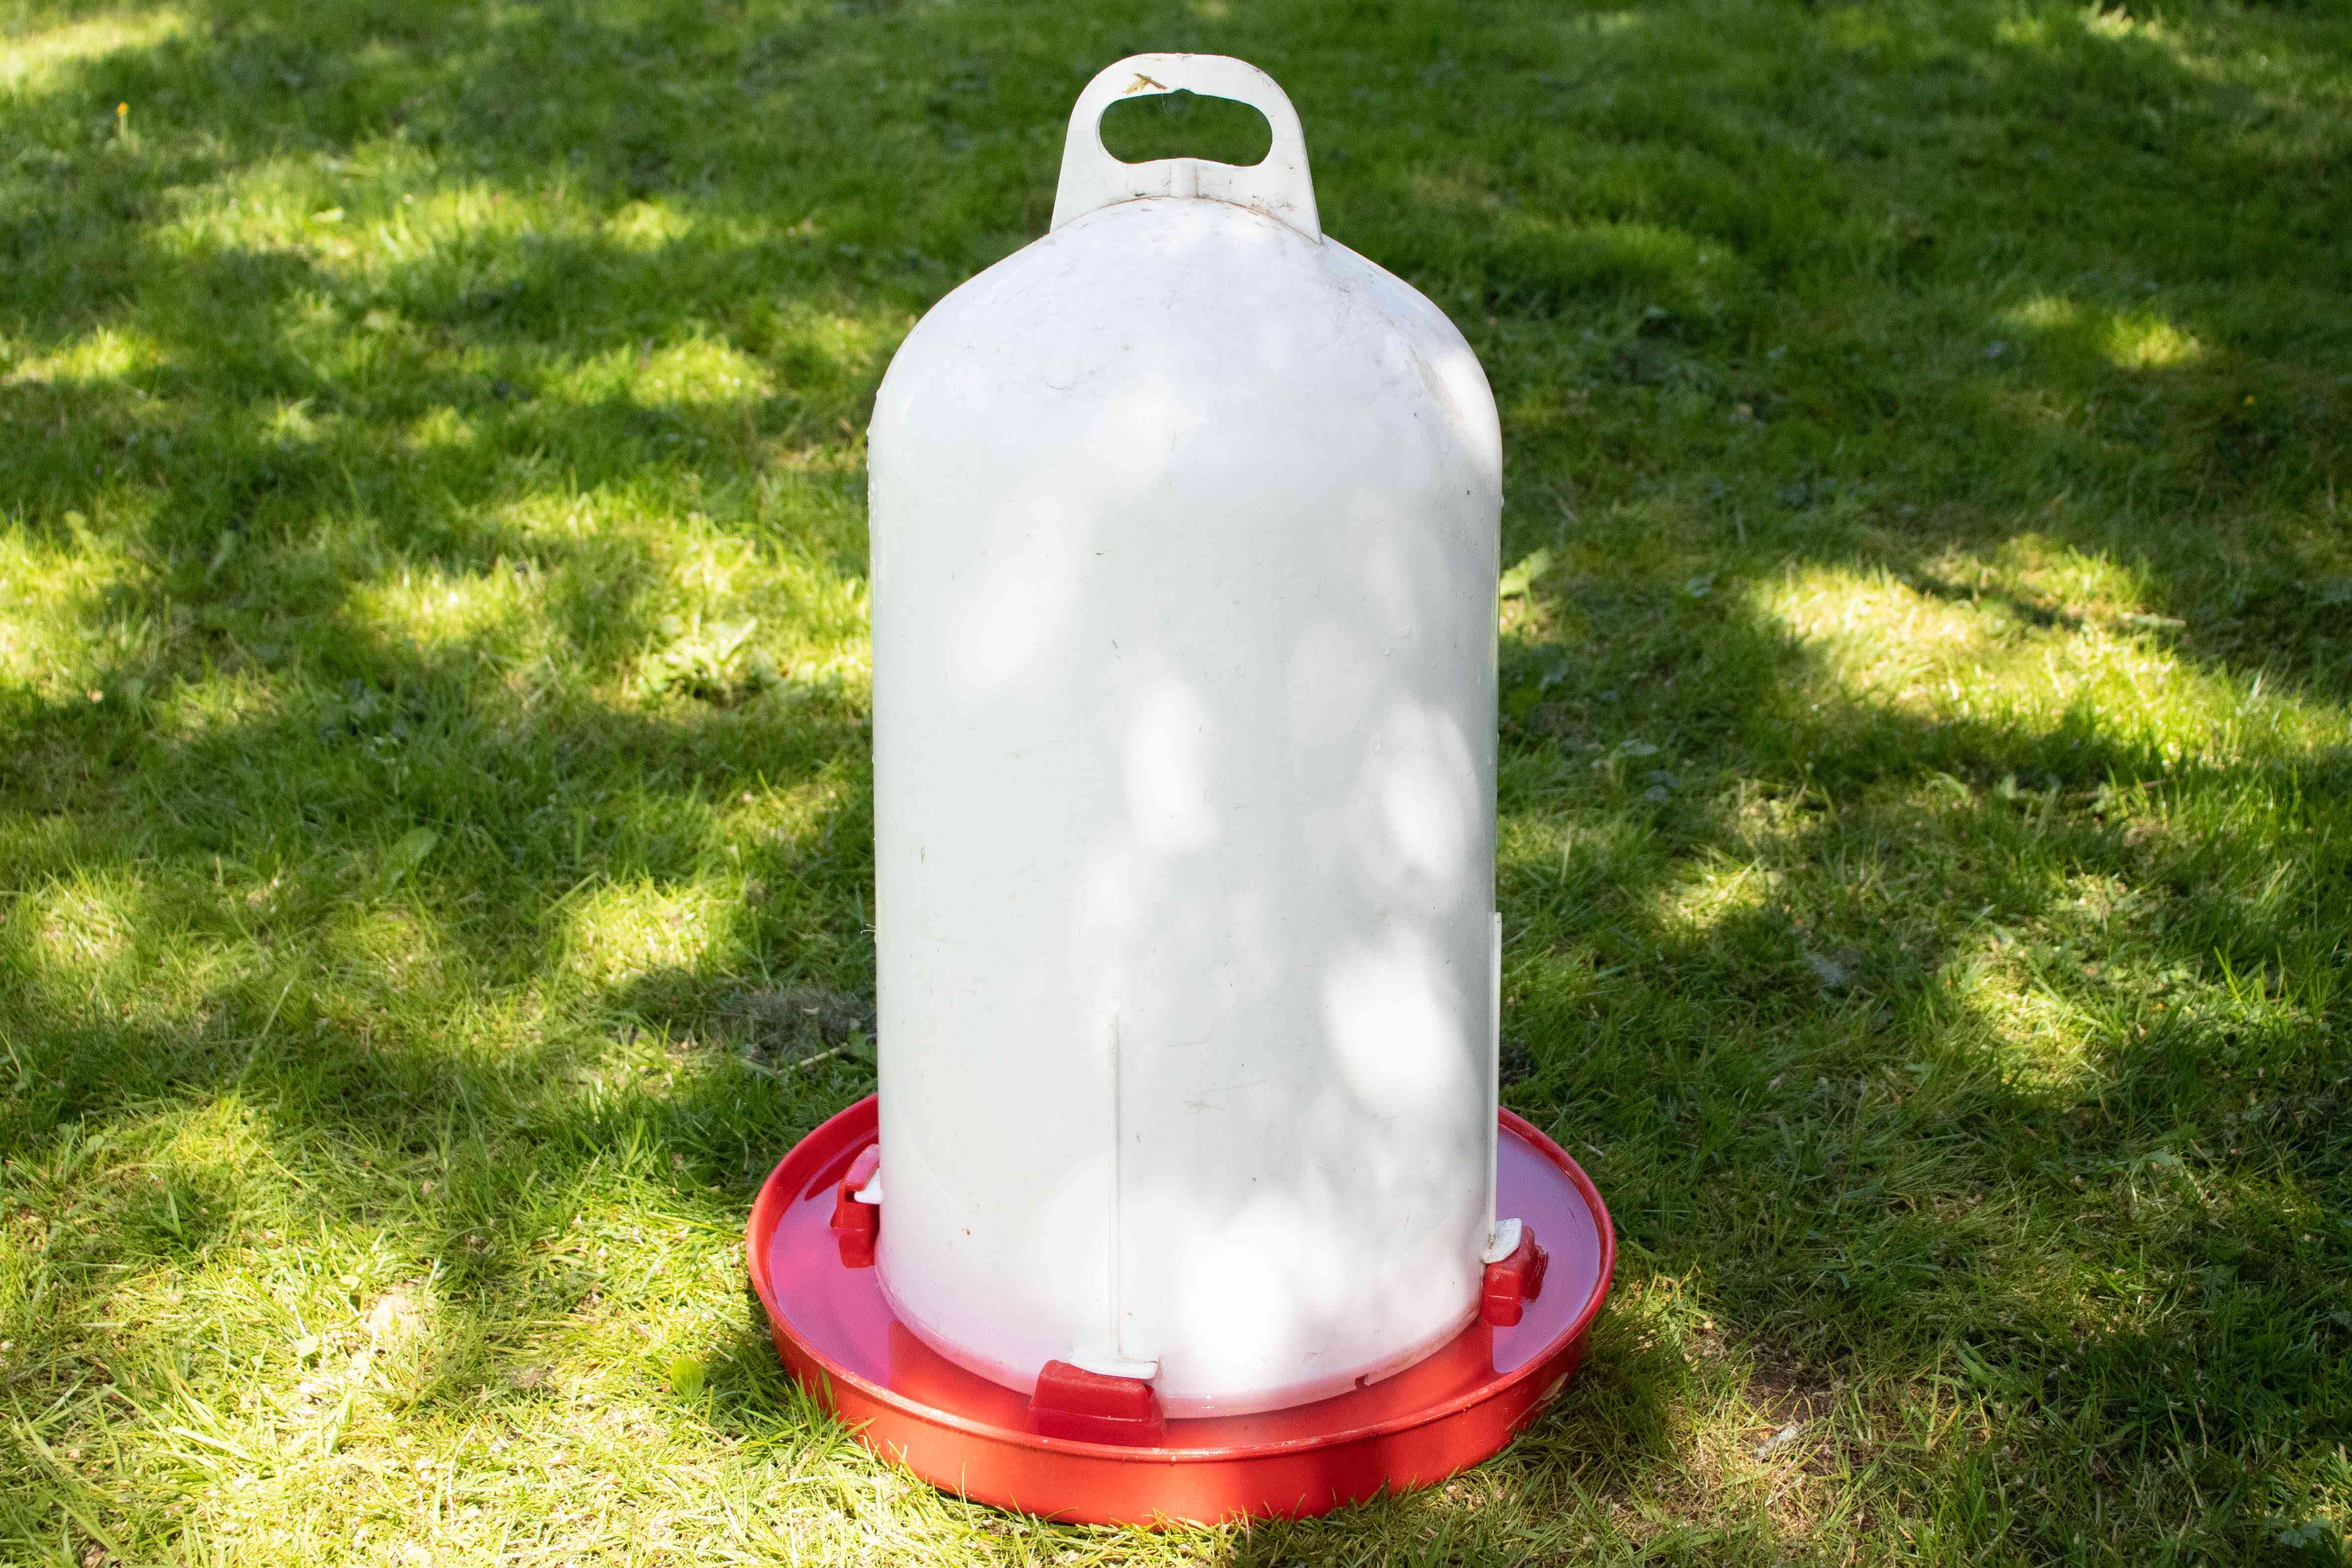 White and orange plastic water vessel for chickens on grass